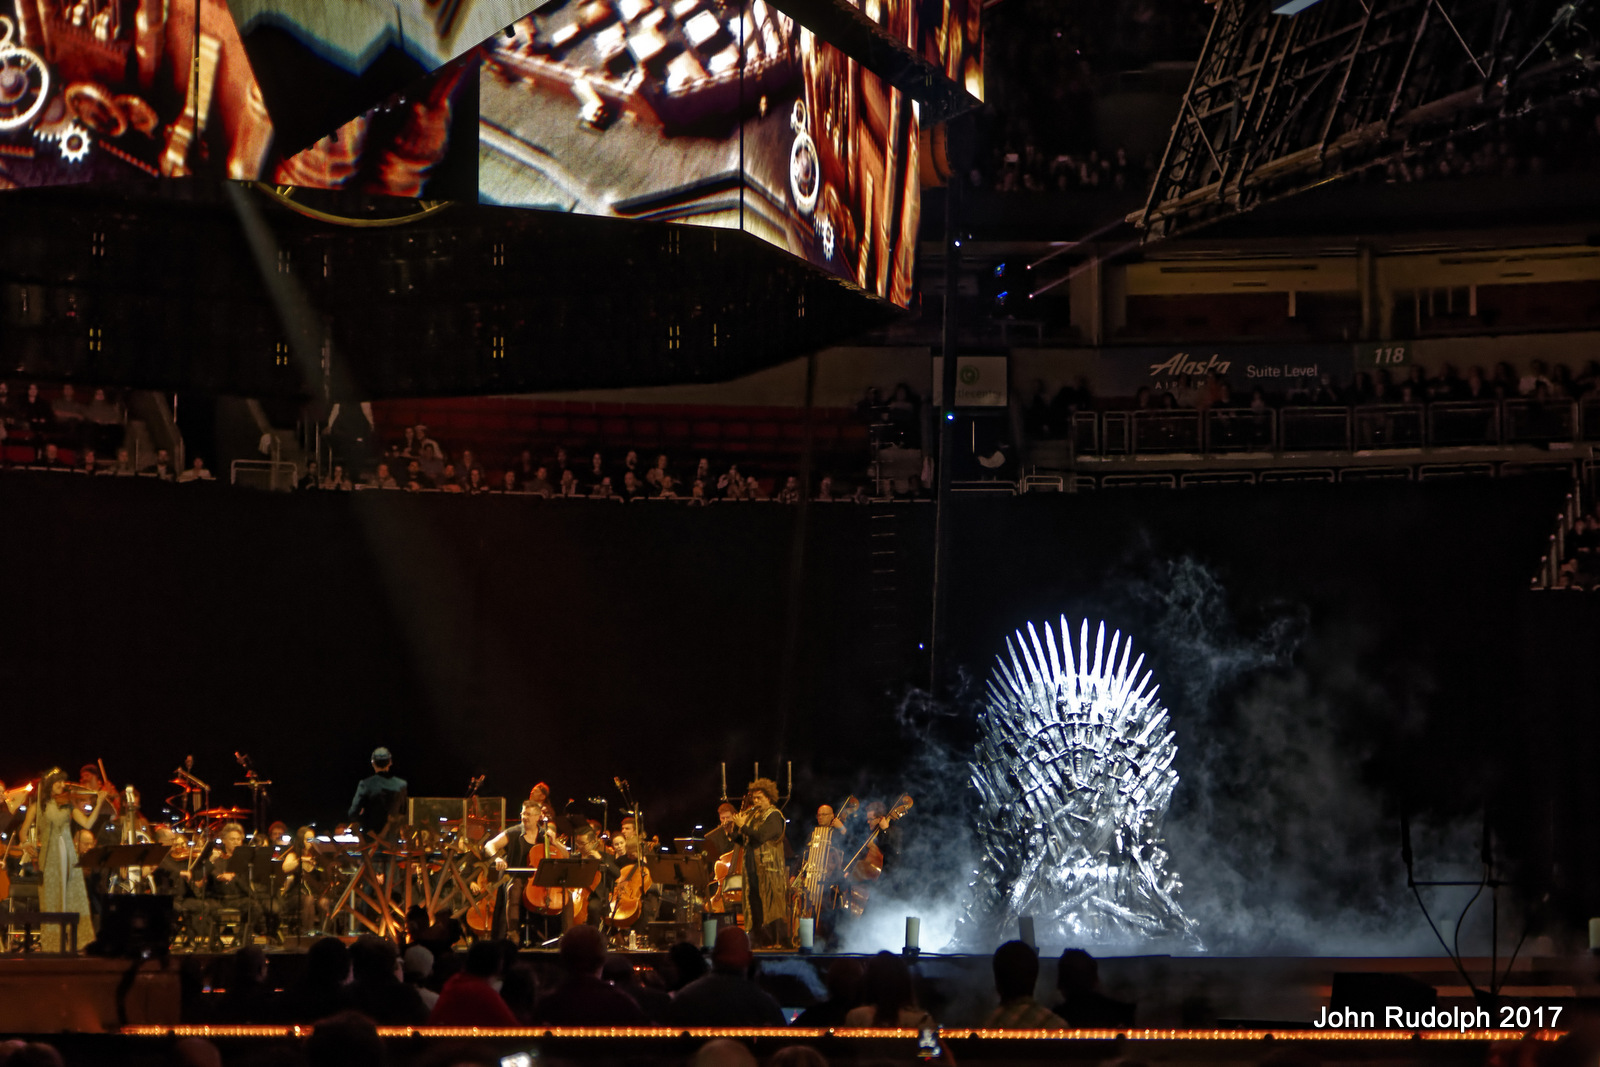 concert experience Game of thrones composer ramin djawadi and his team at hbo have created an incredible concert experience for fans of the show, and it's totally worth it.